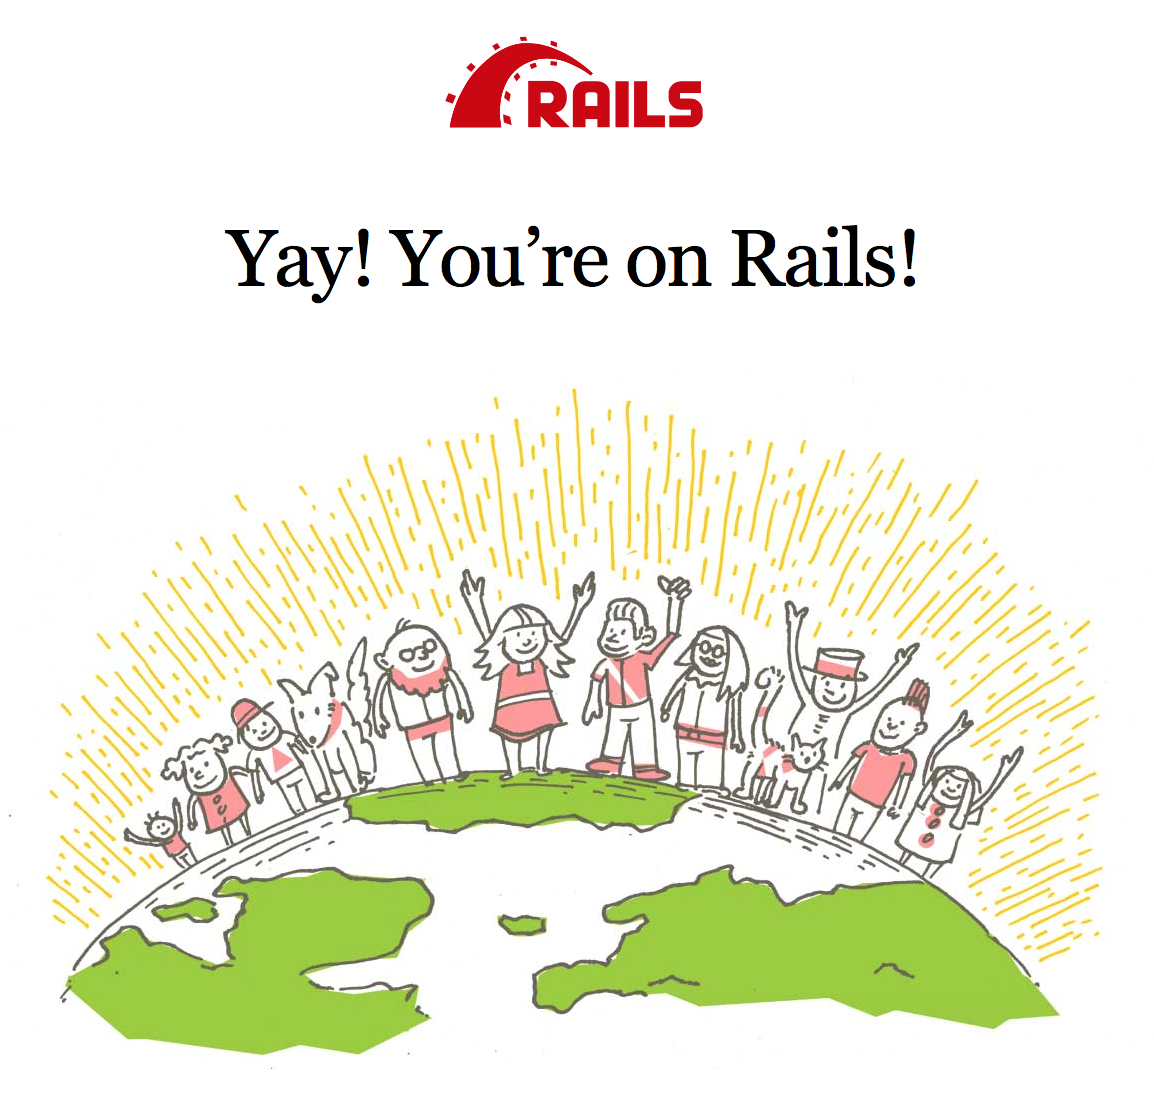 rails_welcome.png (1154×1110)